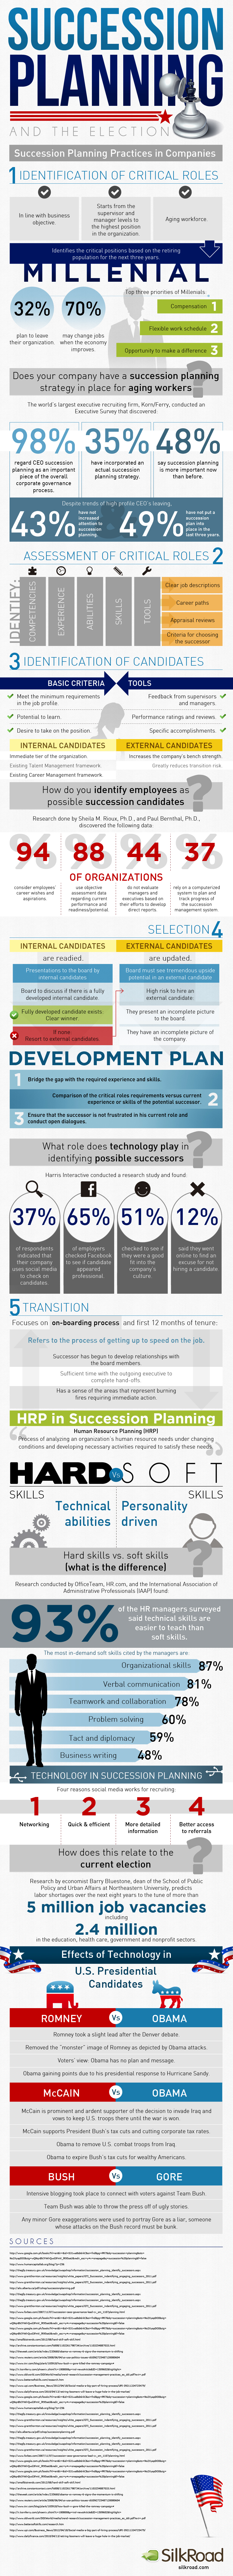 succession-planning-and-the-election-infographic_5099303f10add